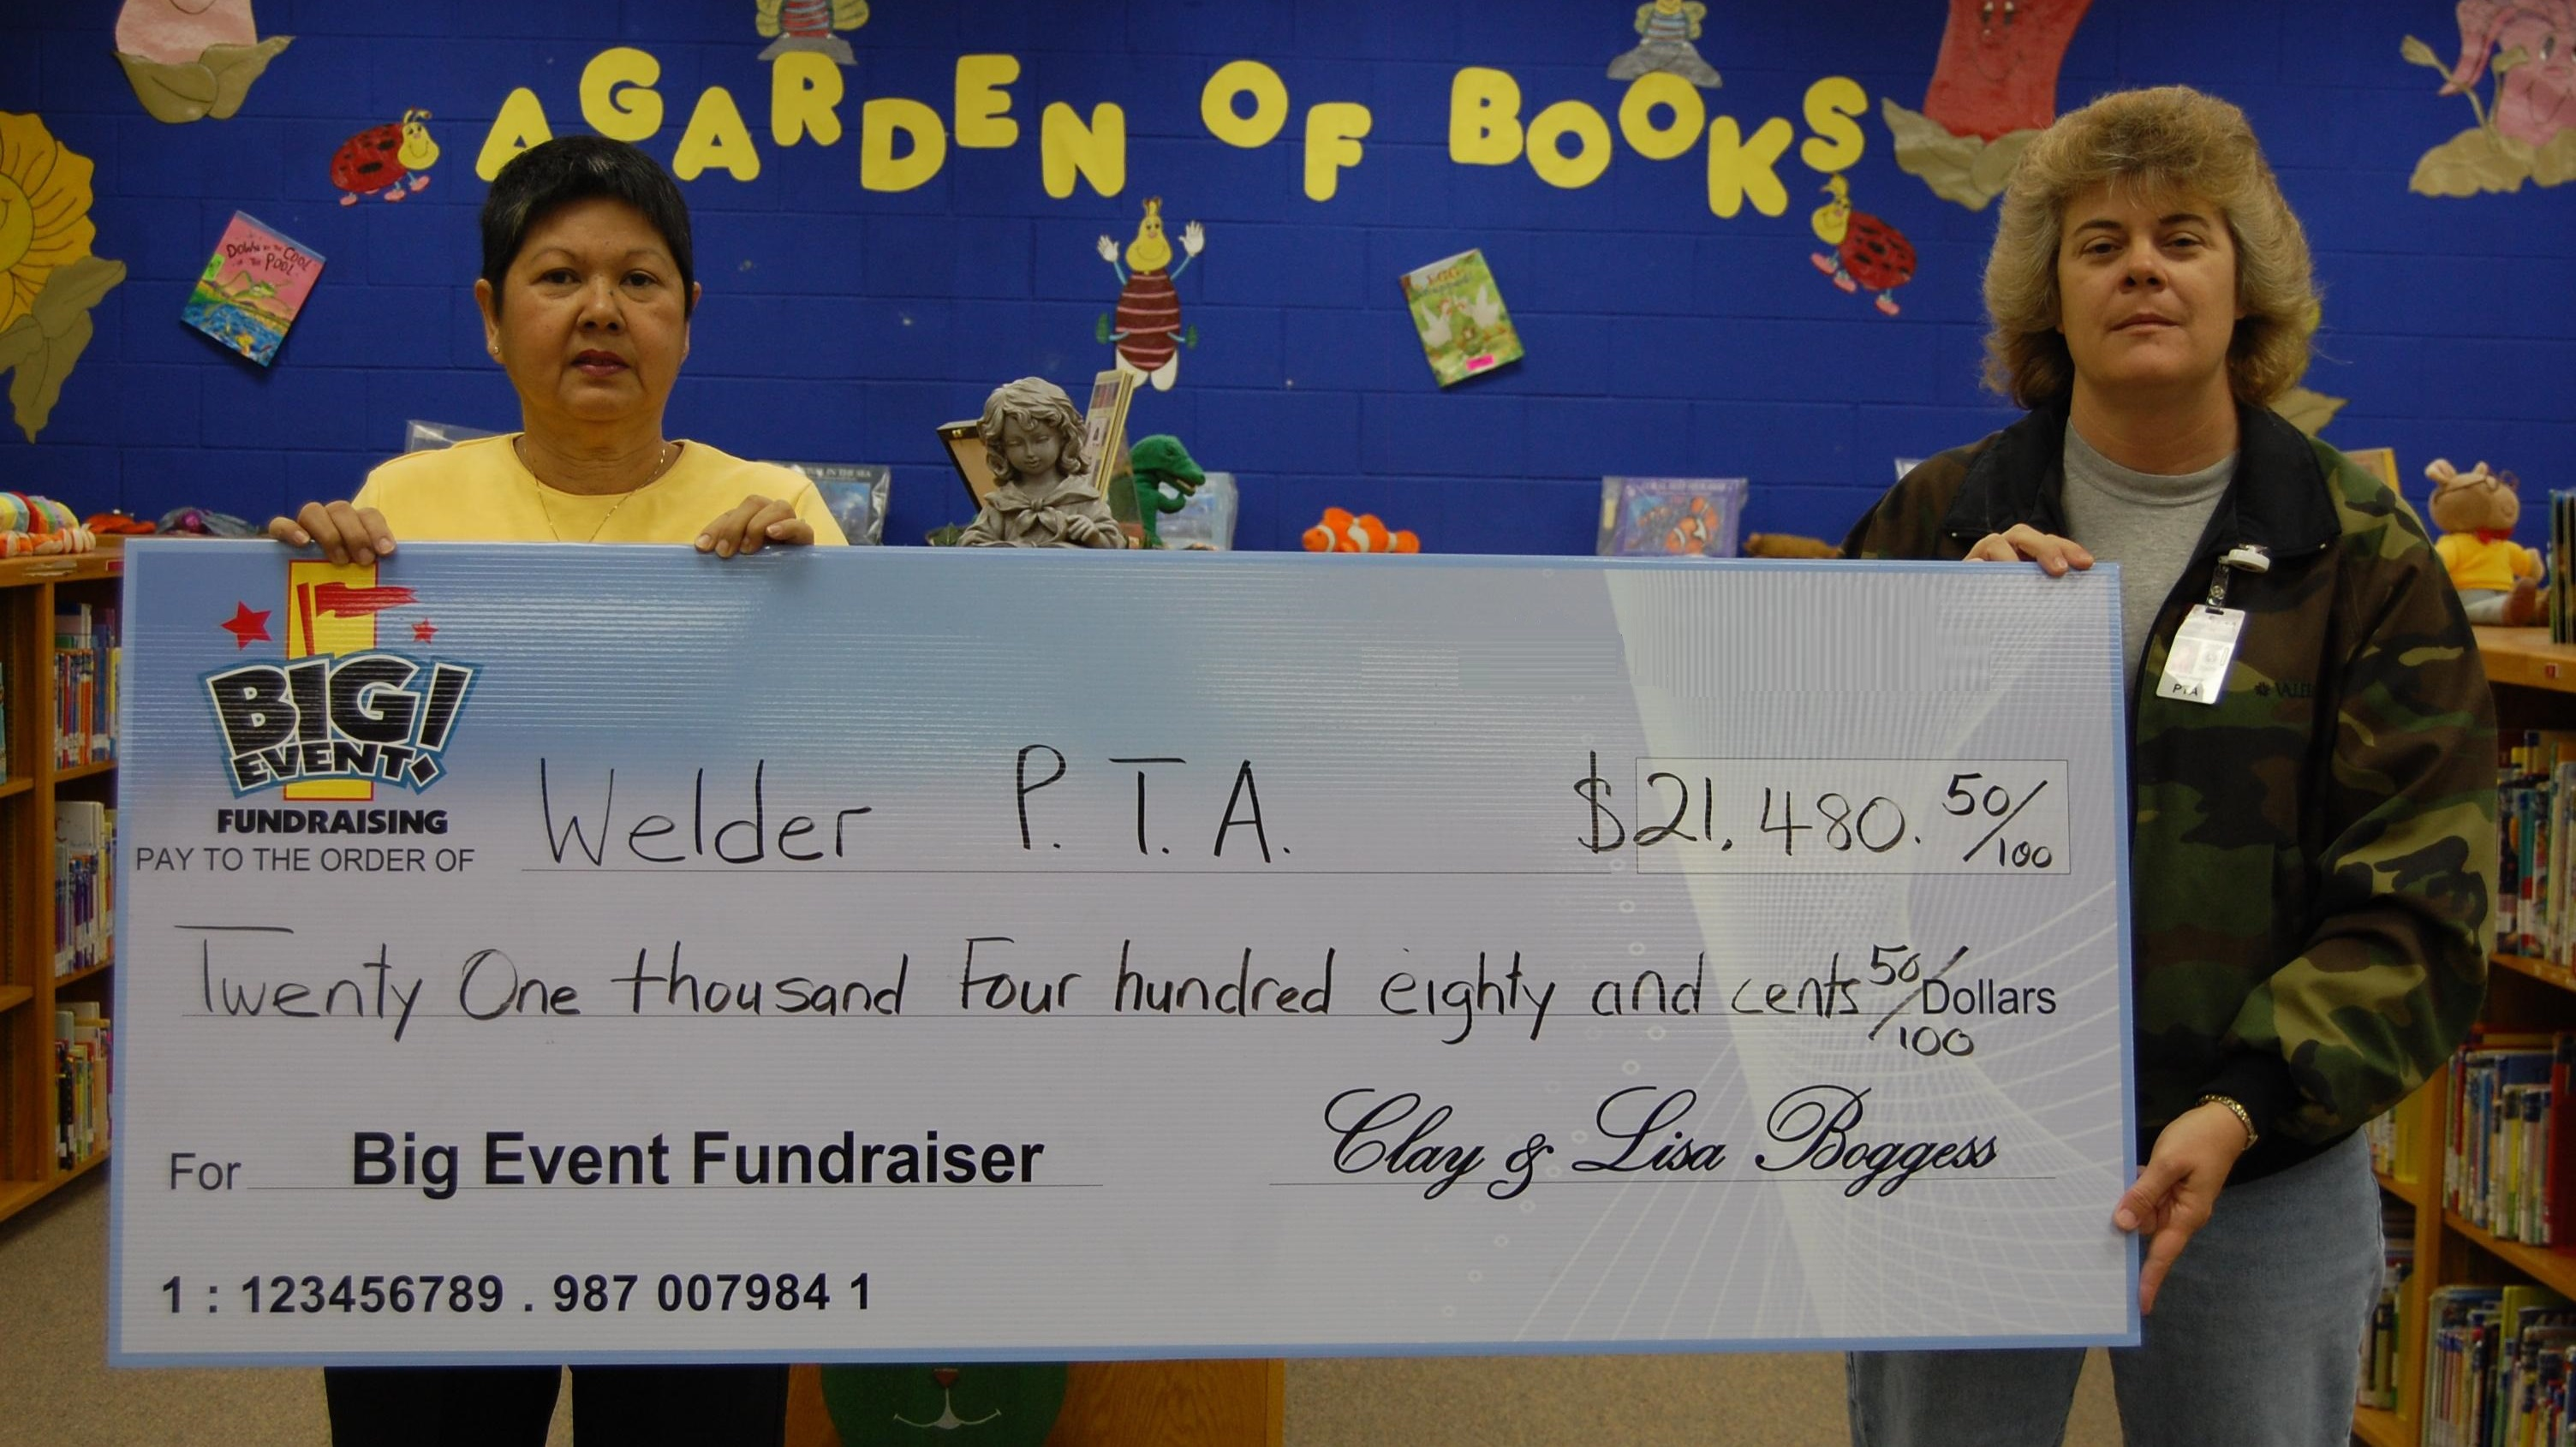 Welder Elementary School PTA fundraising team holding check